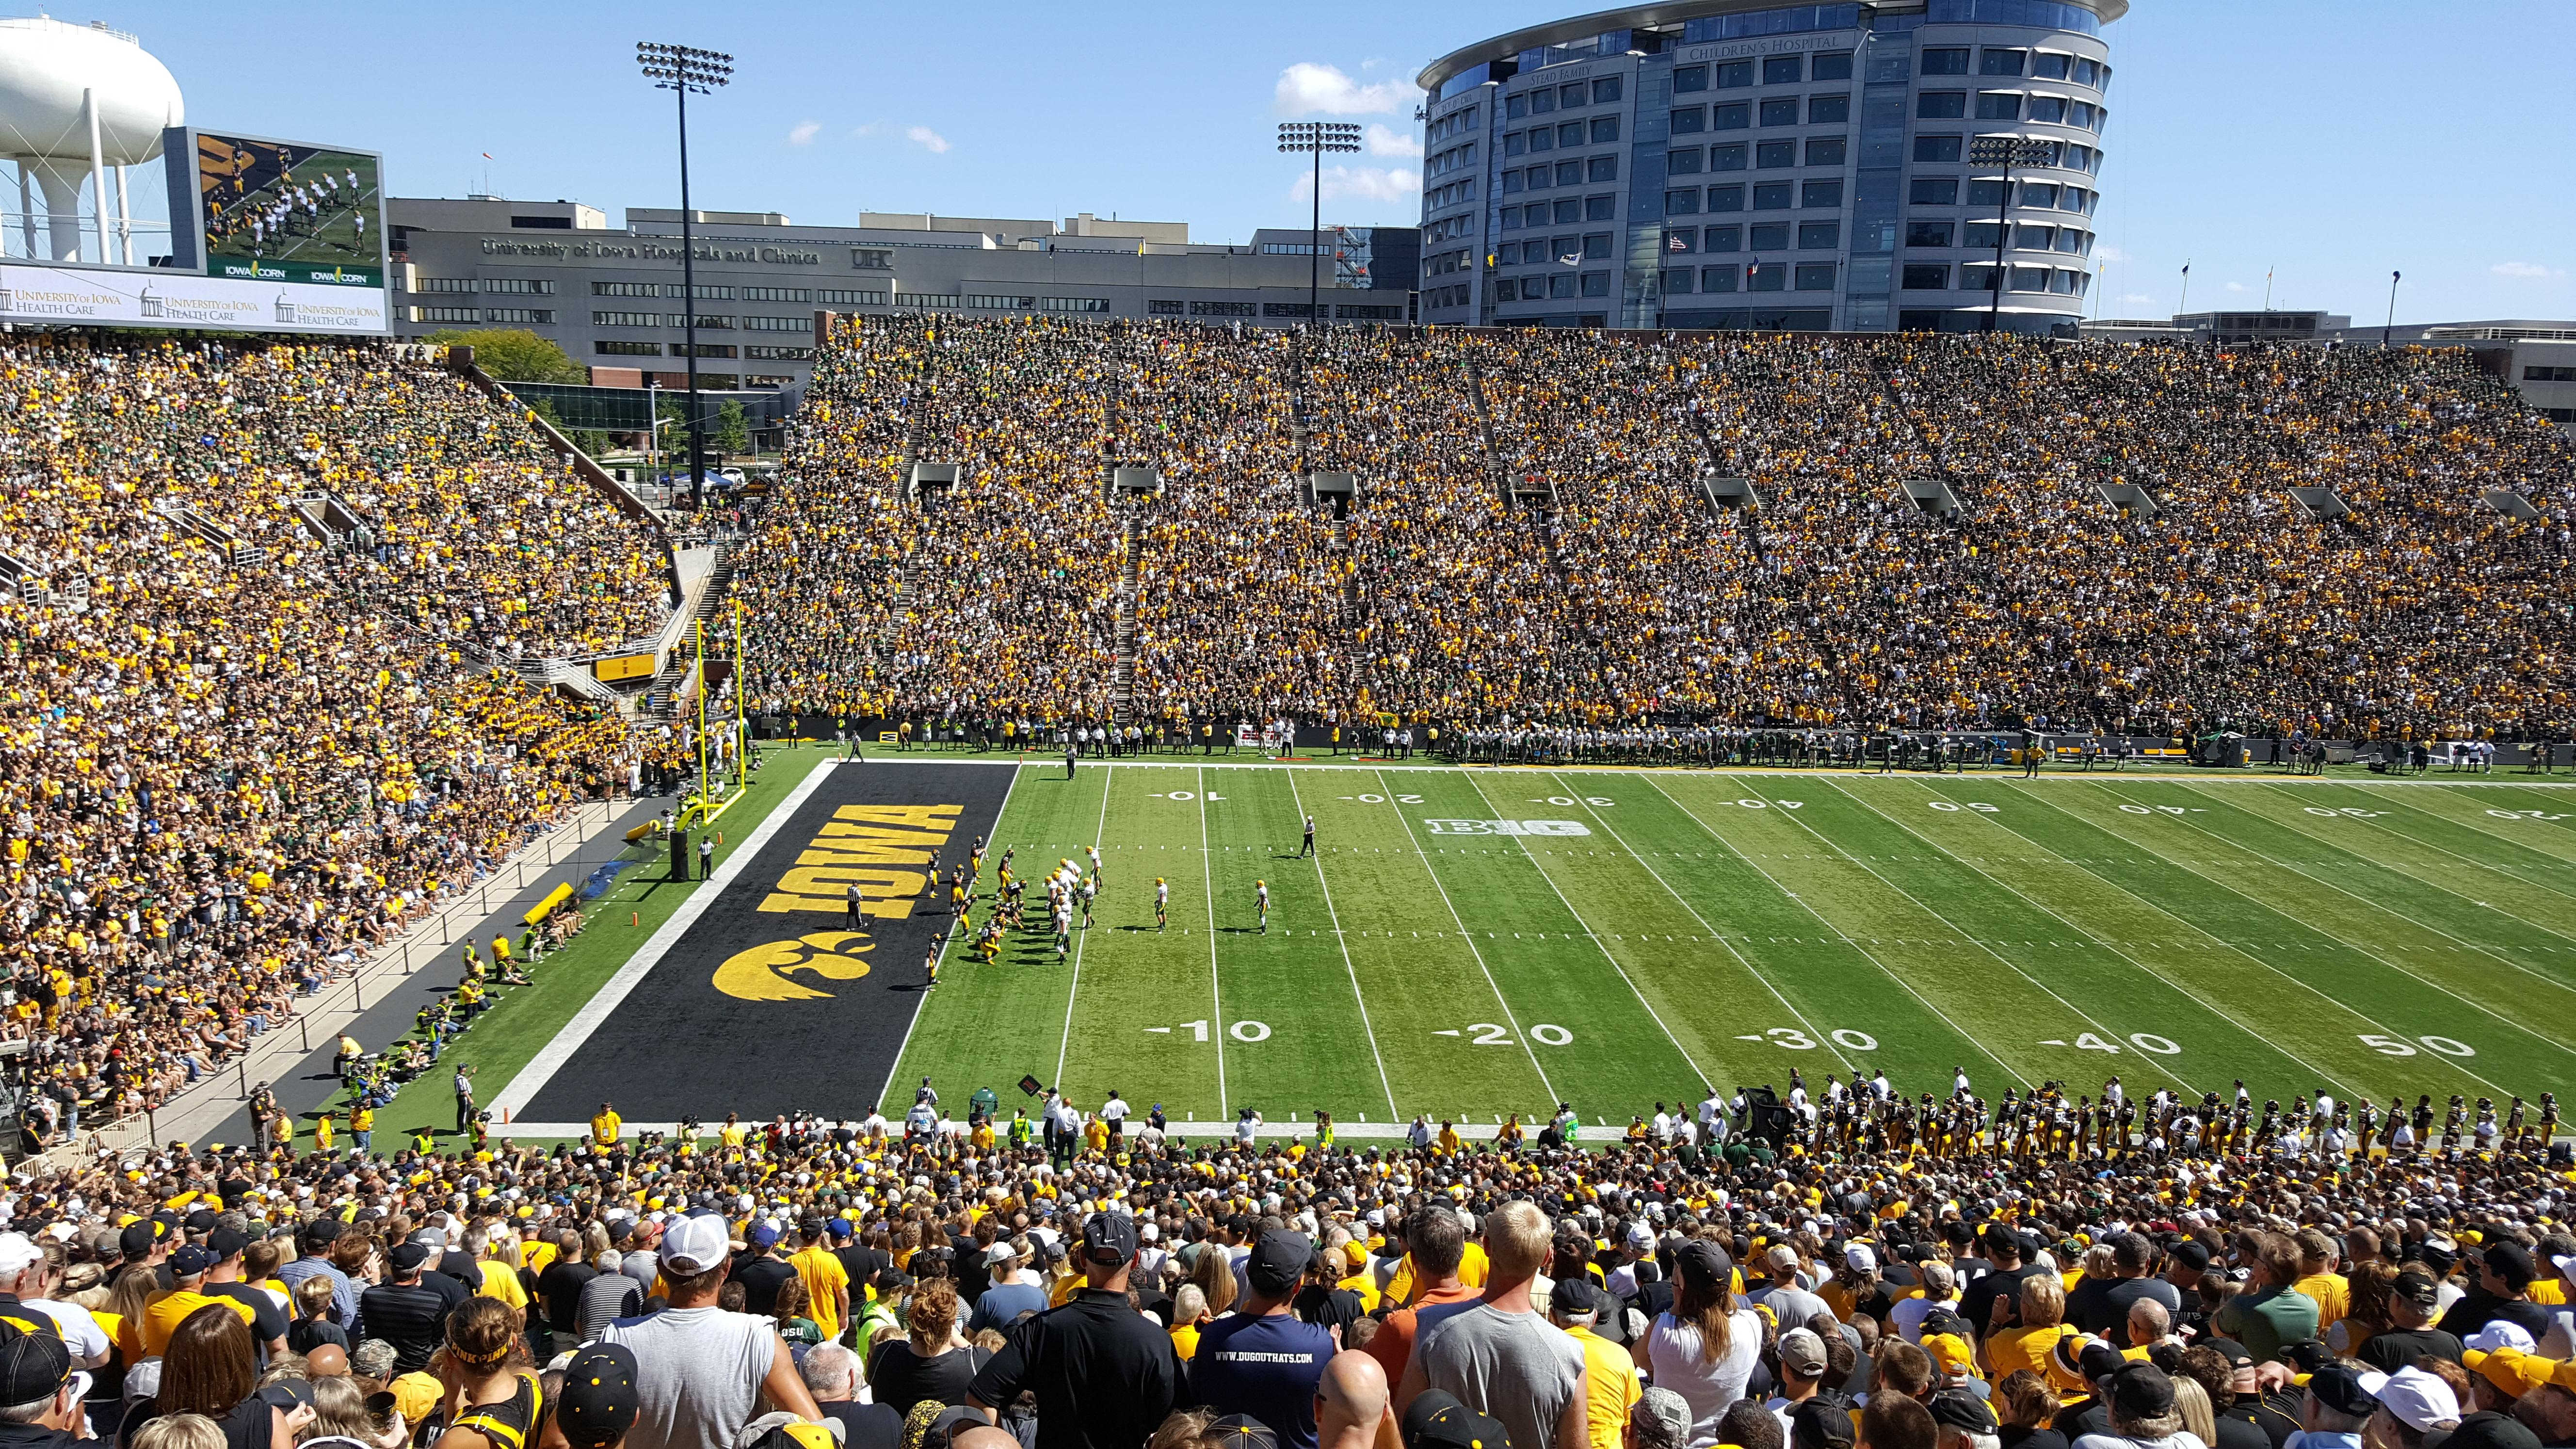 Kinnick Stadium Section 129 Row 64 Seat 20